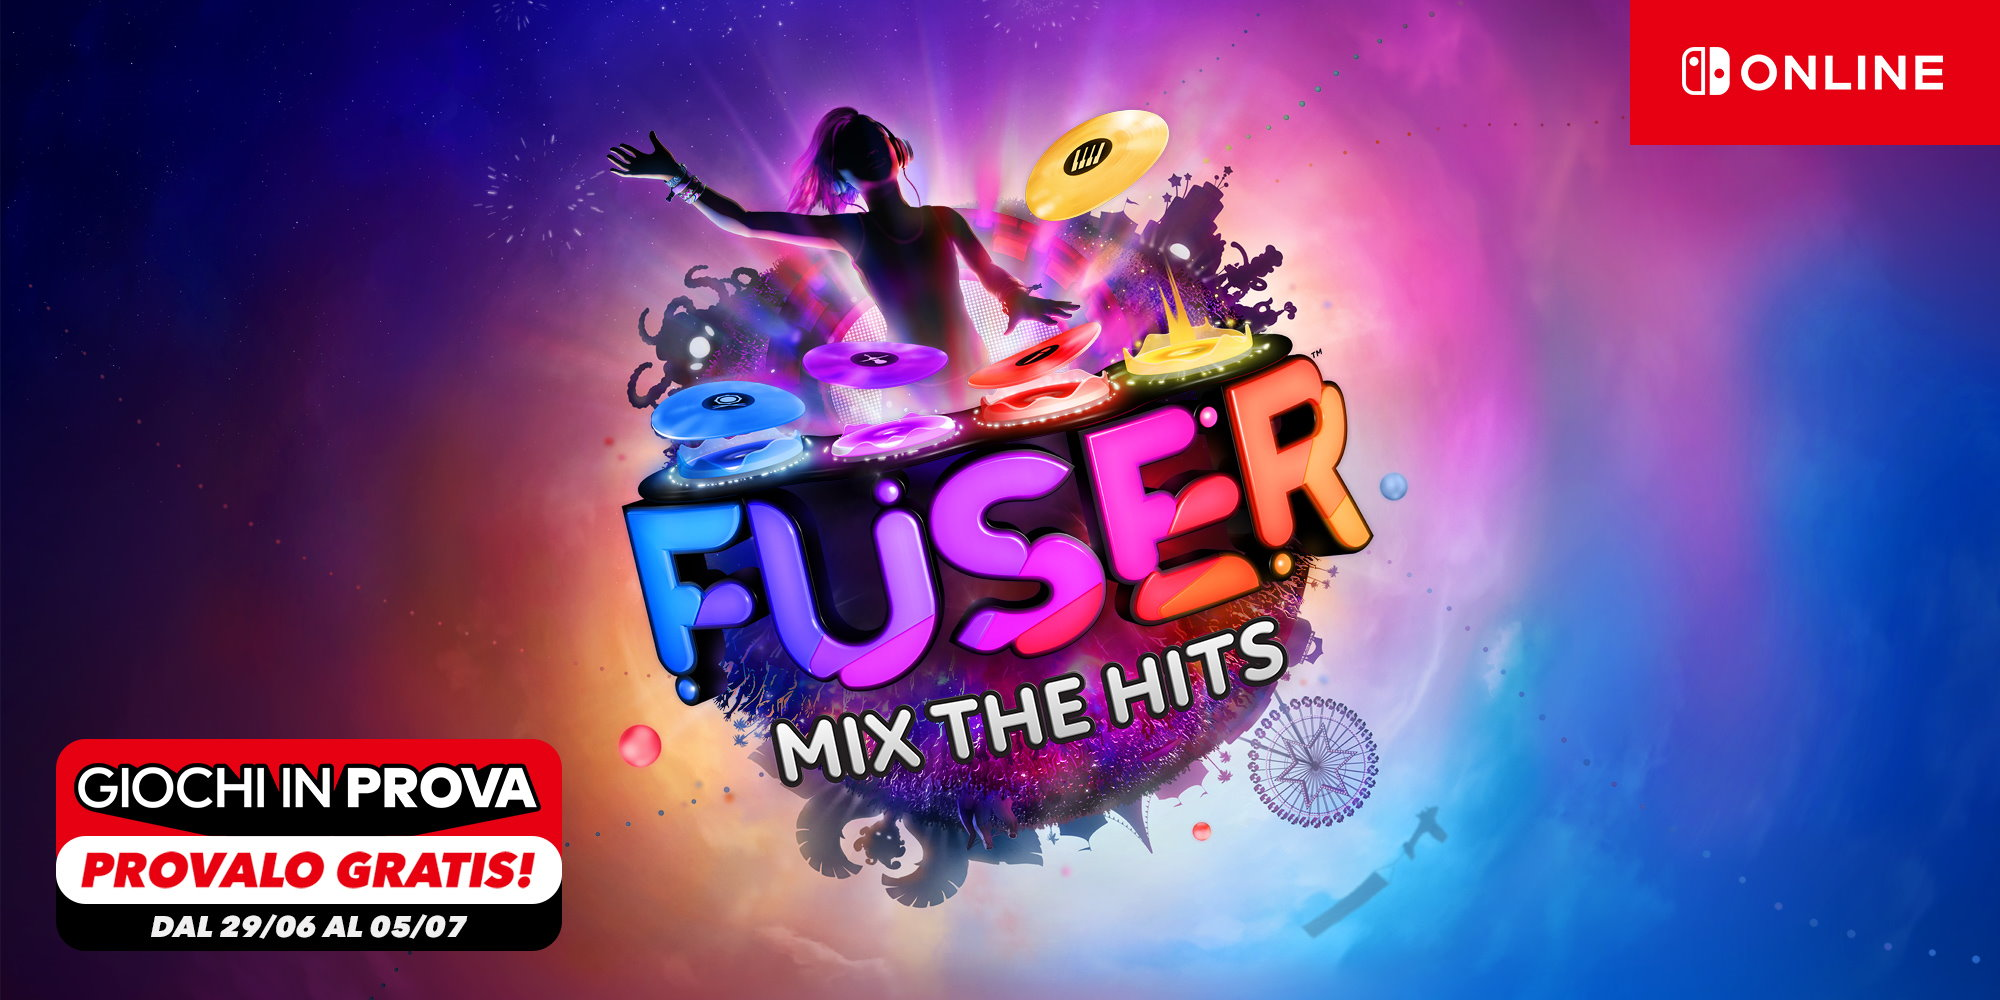 FUSER Mix the Hits Nintendo Switch Online